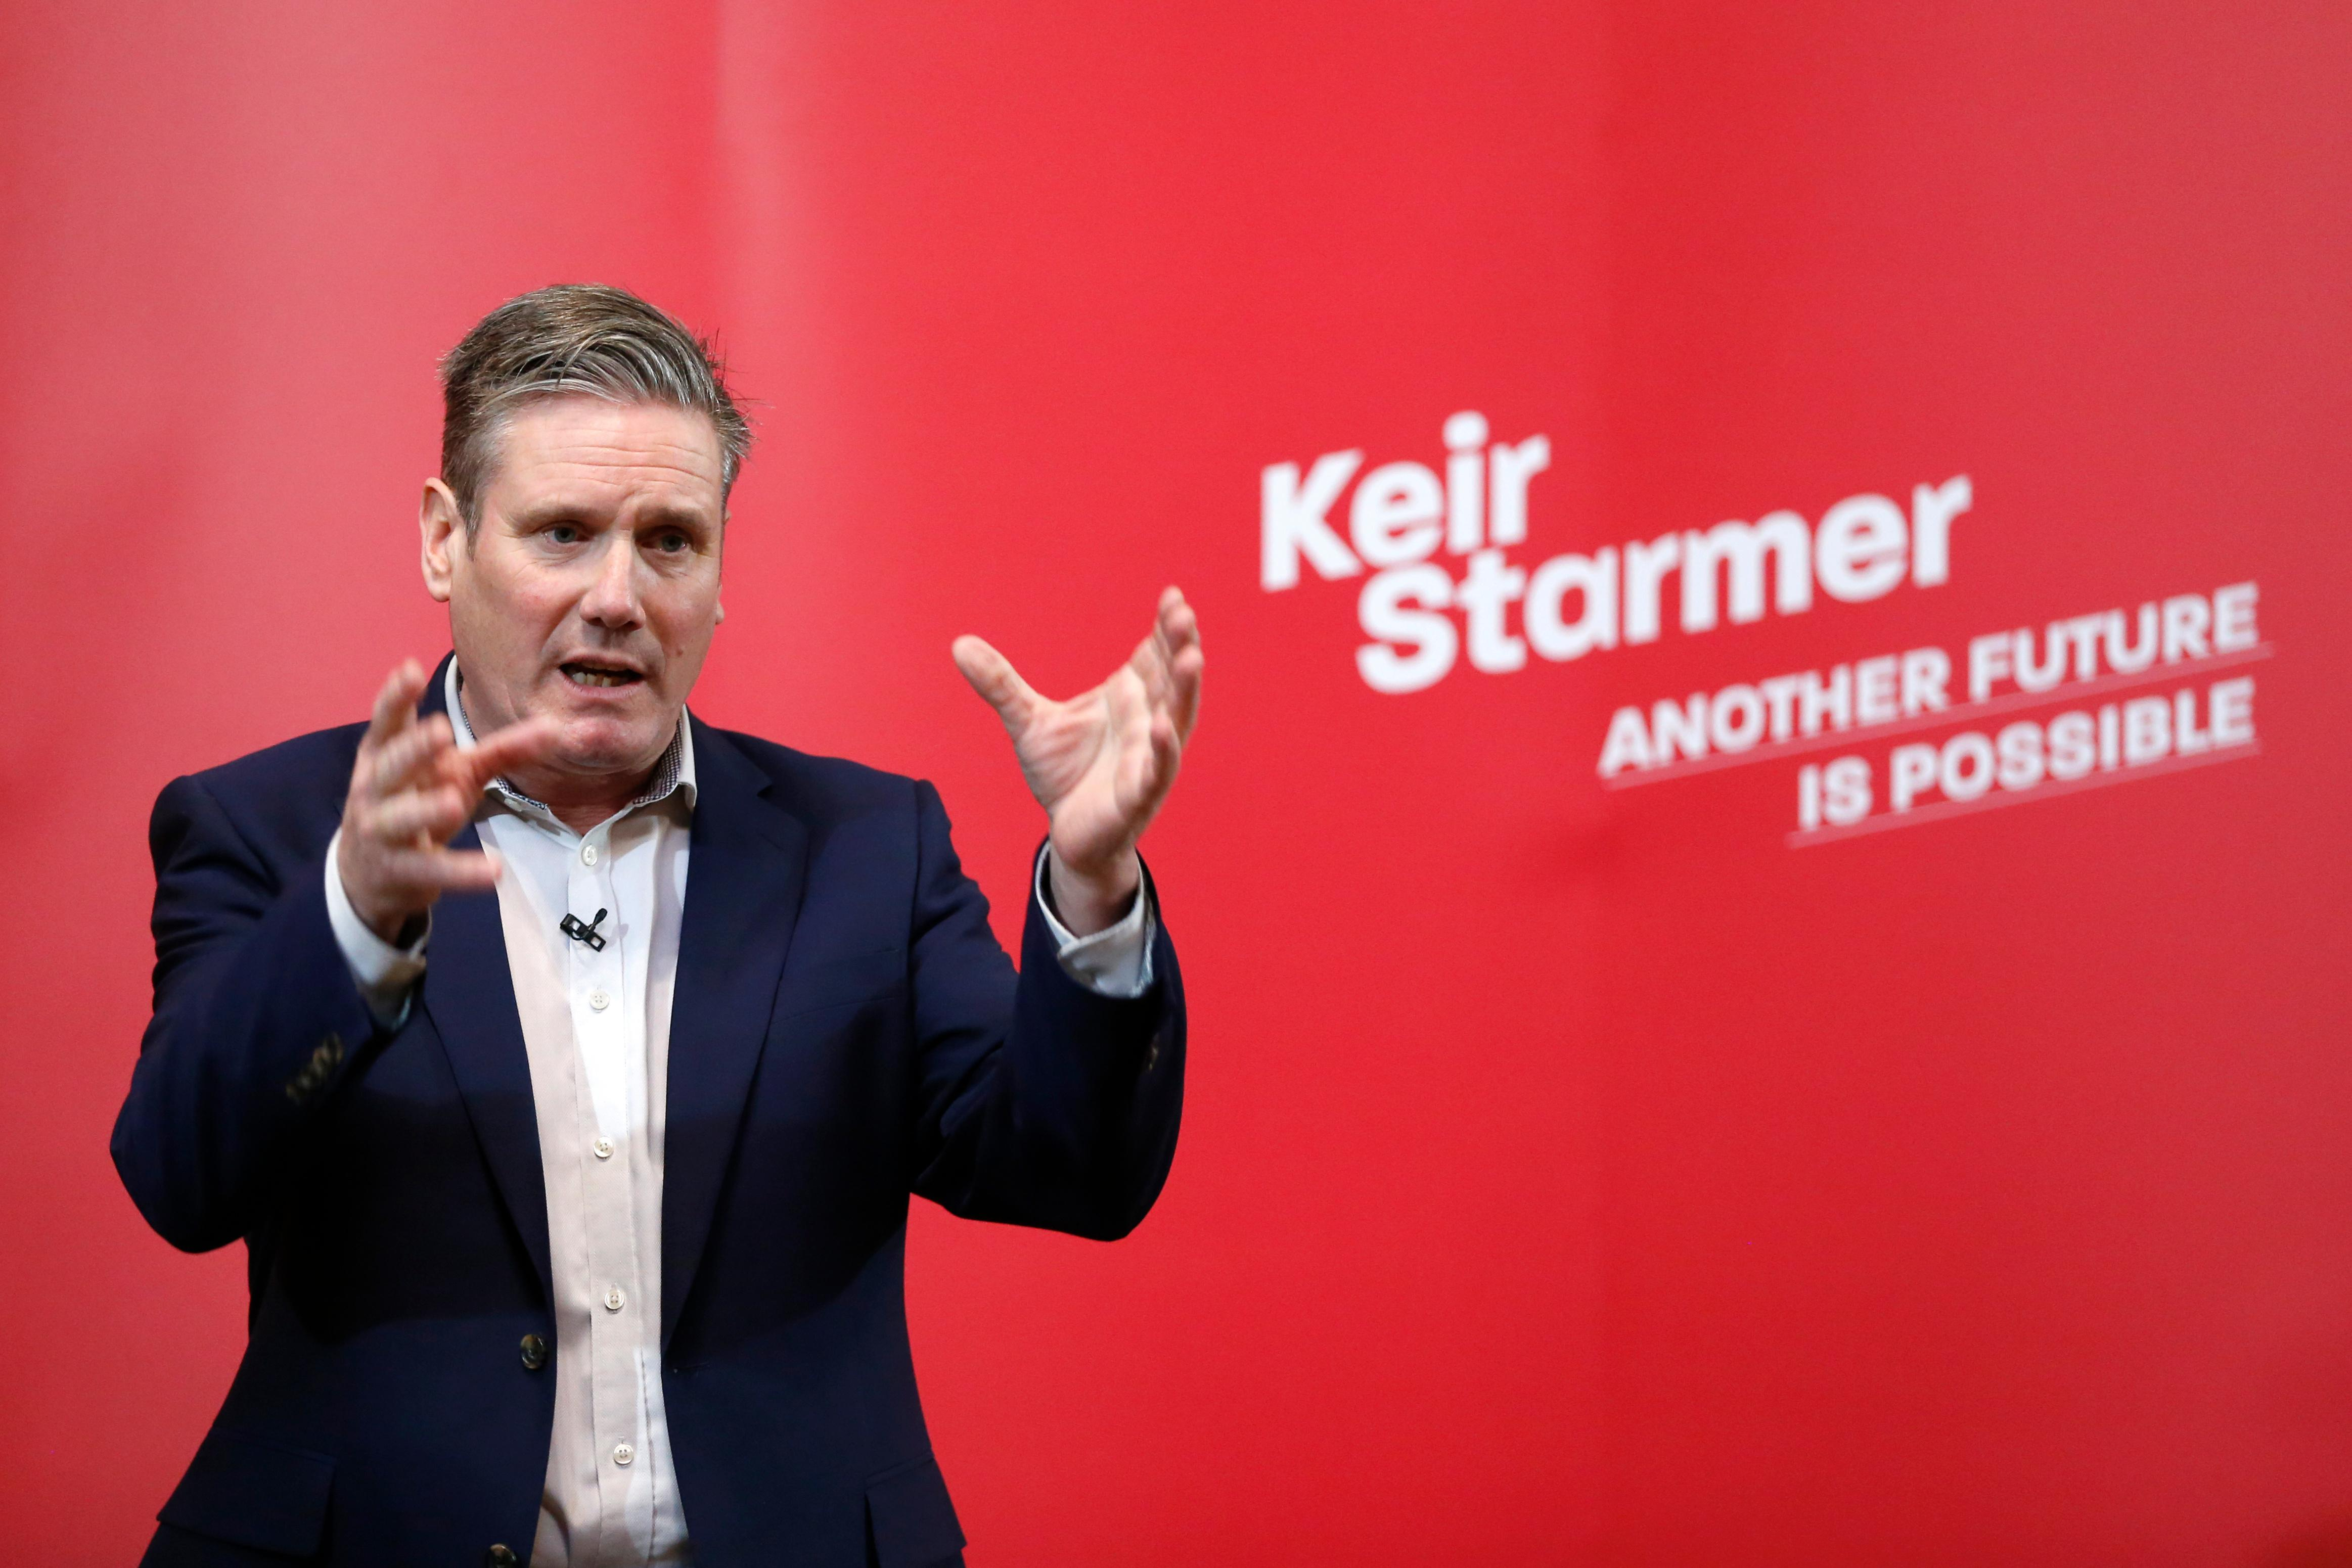 What can we learn about Keir Starmer from his DPP days?